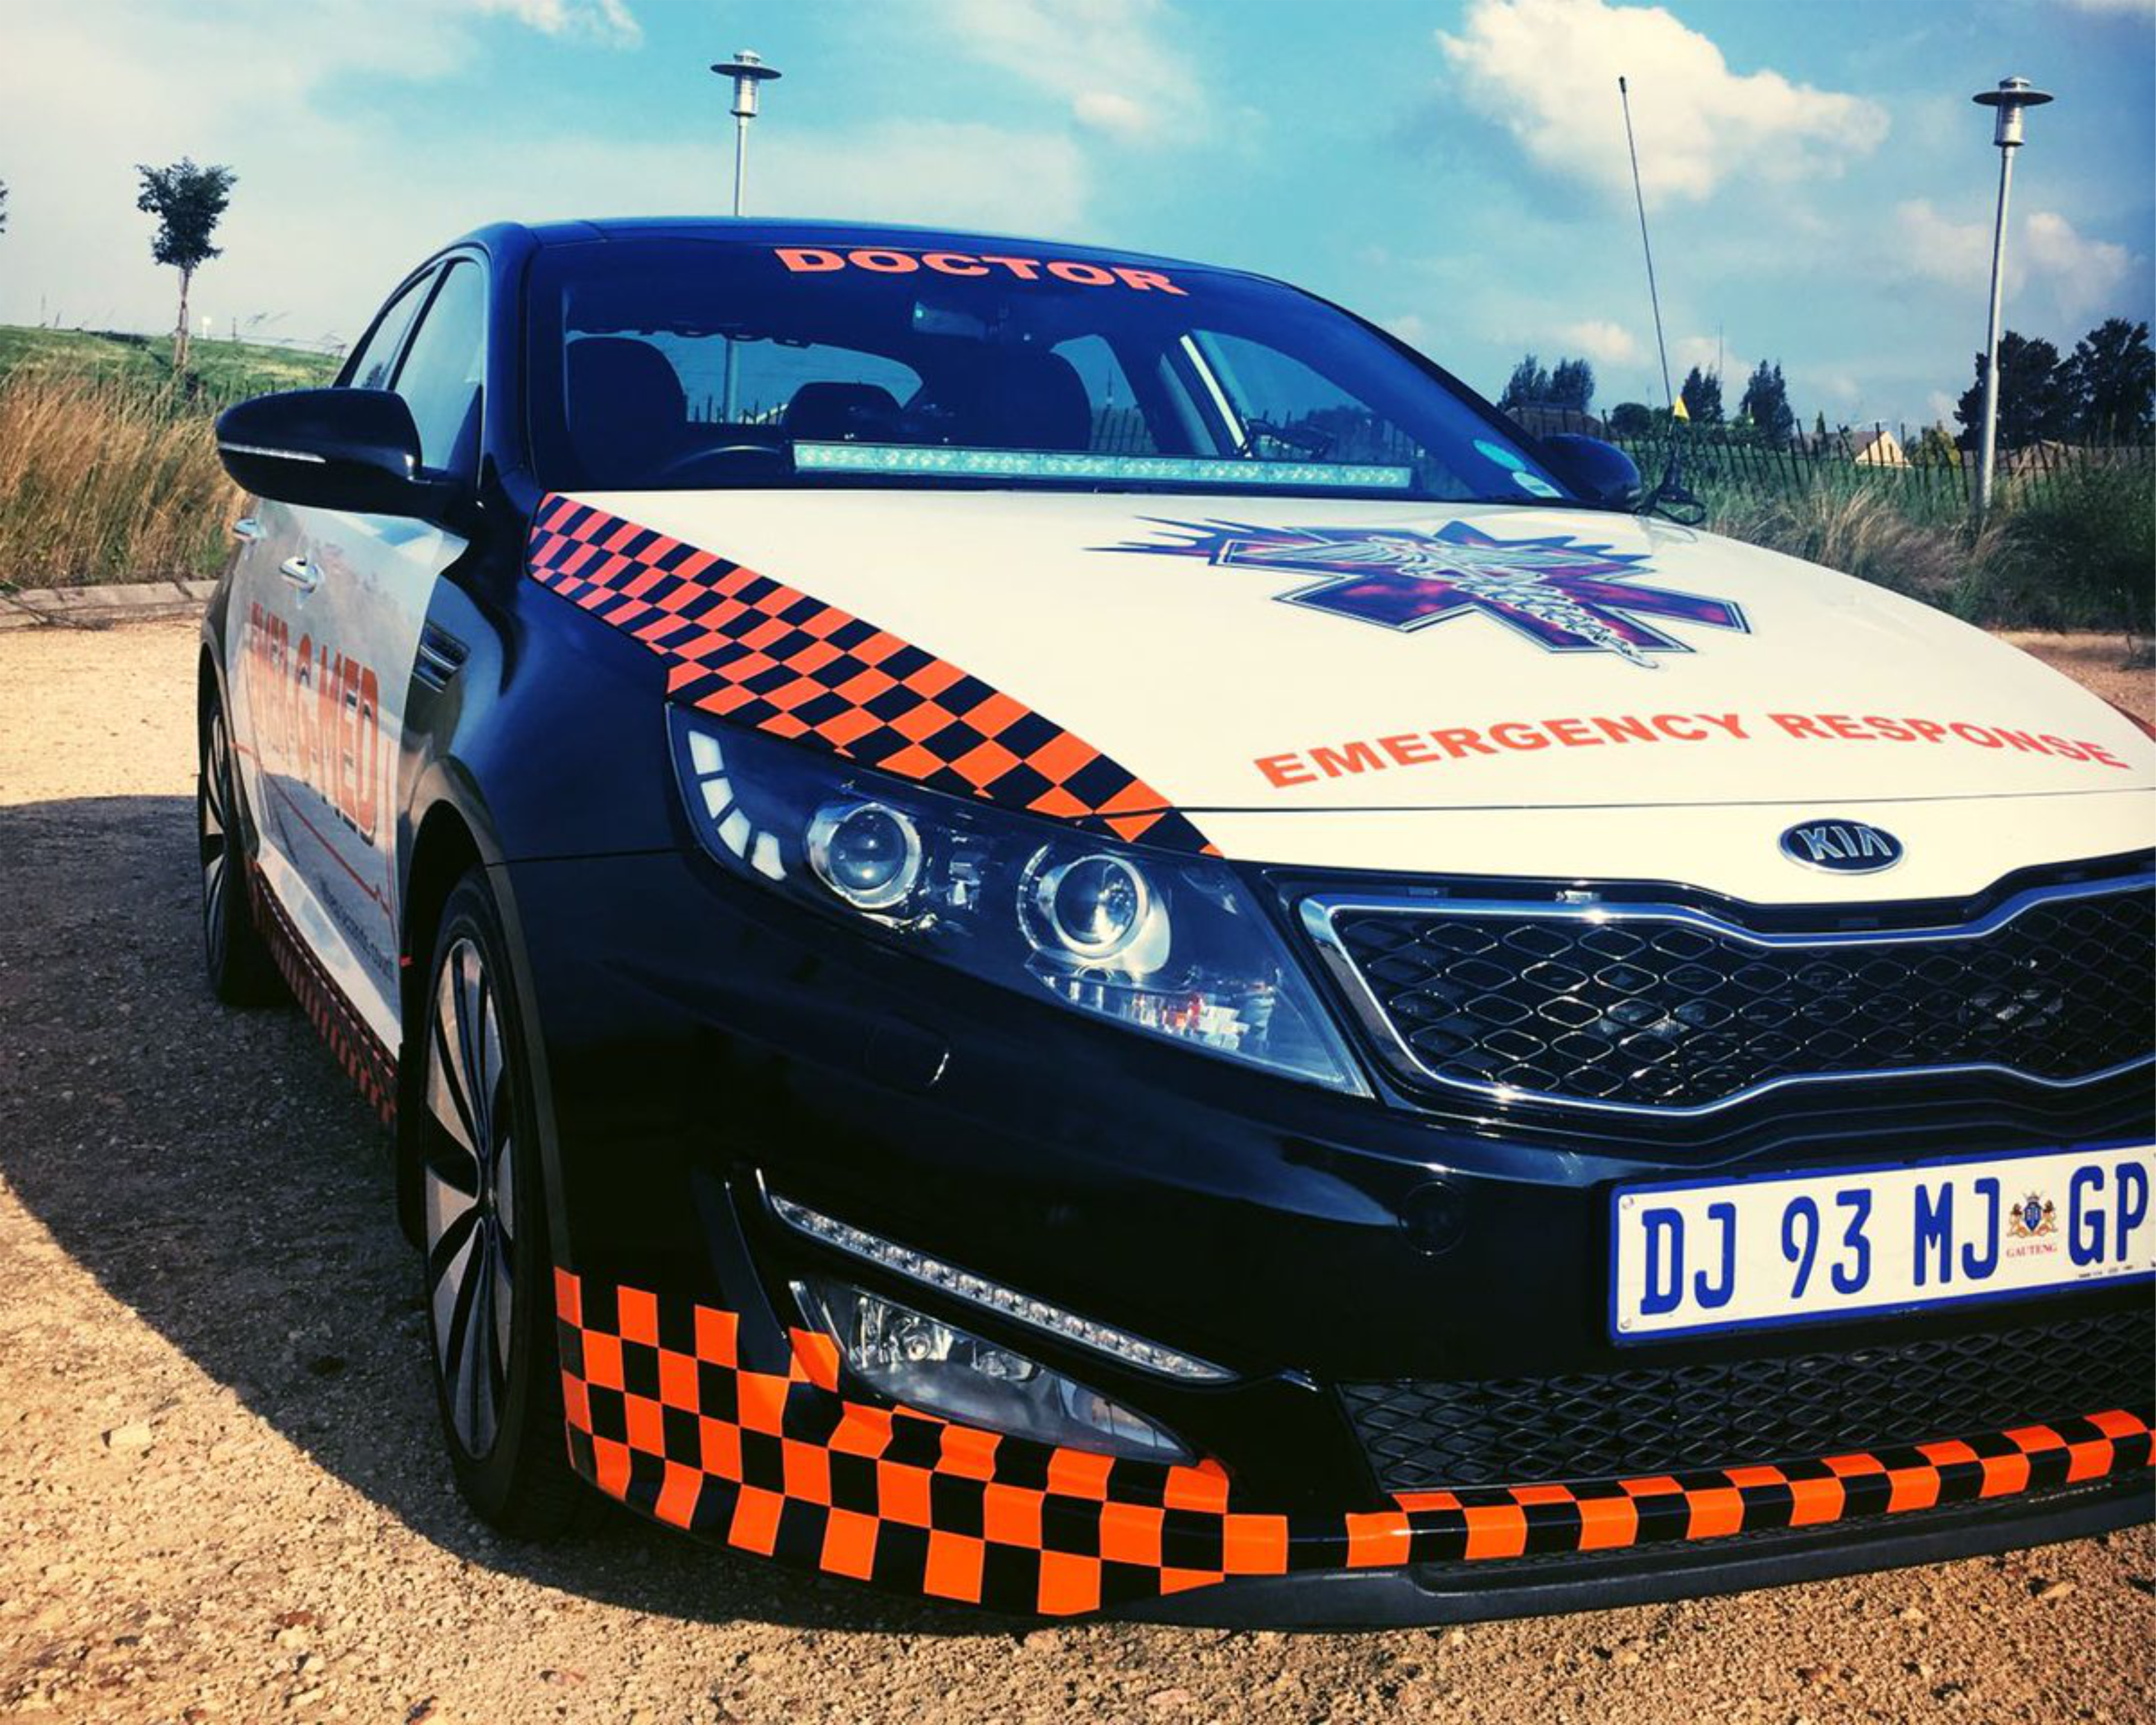 EMER-G-MED KIA OPTIMA